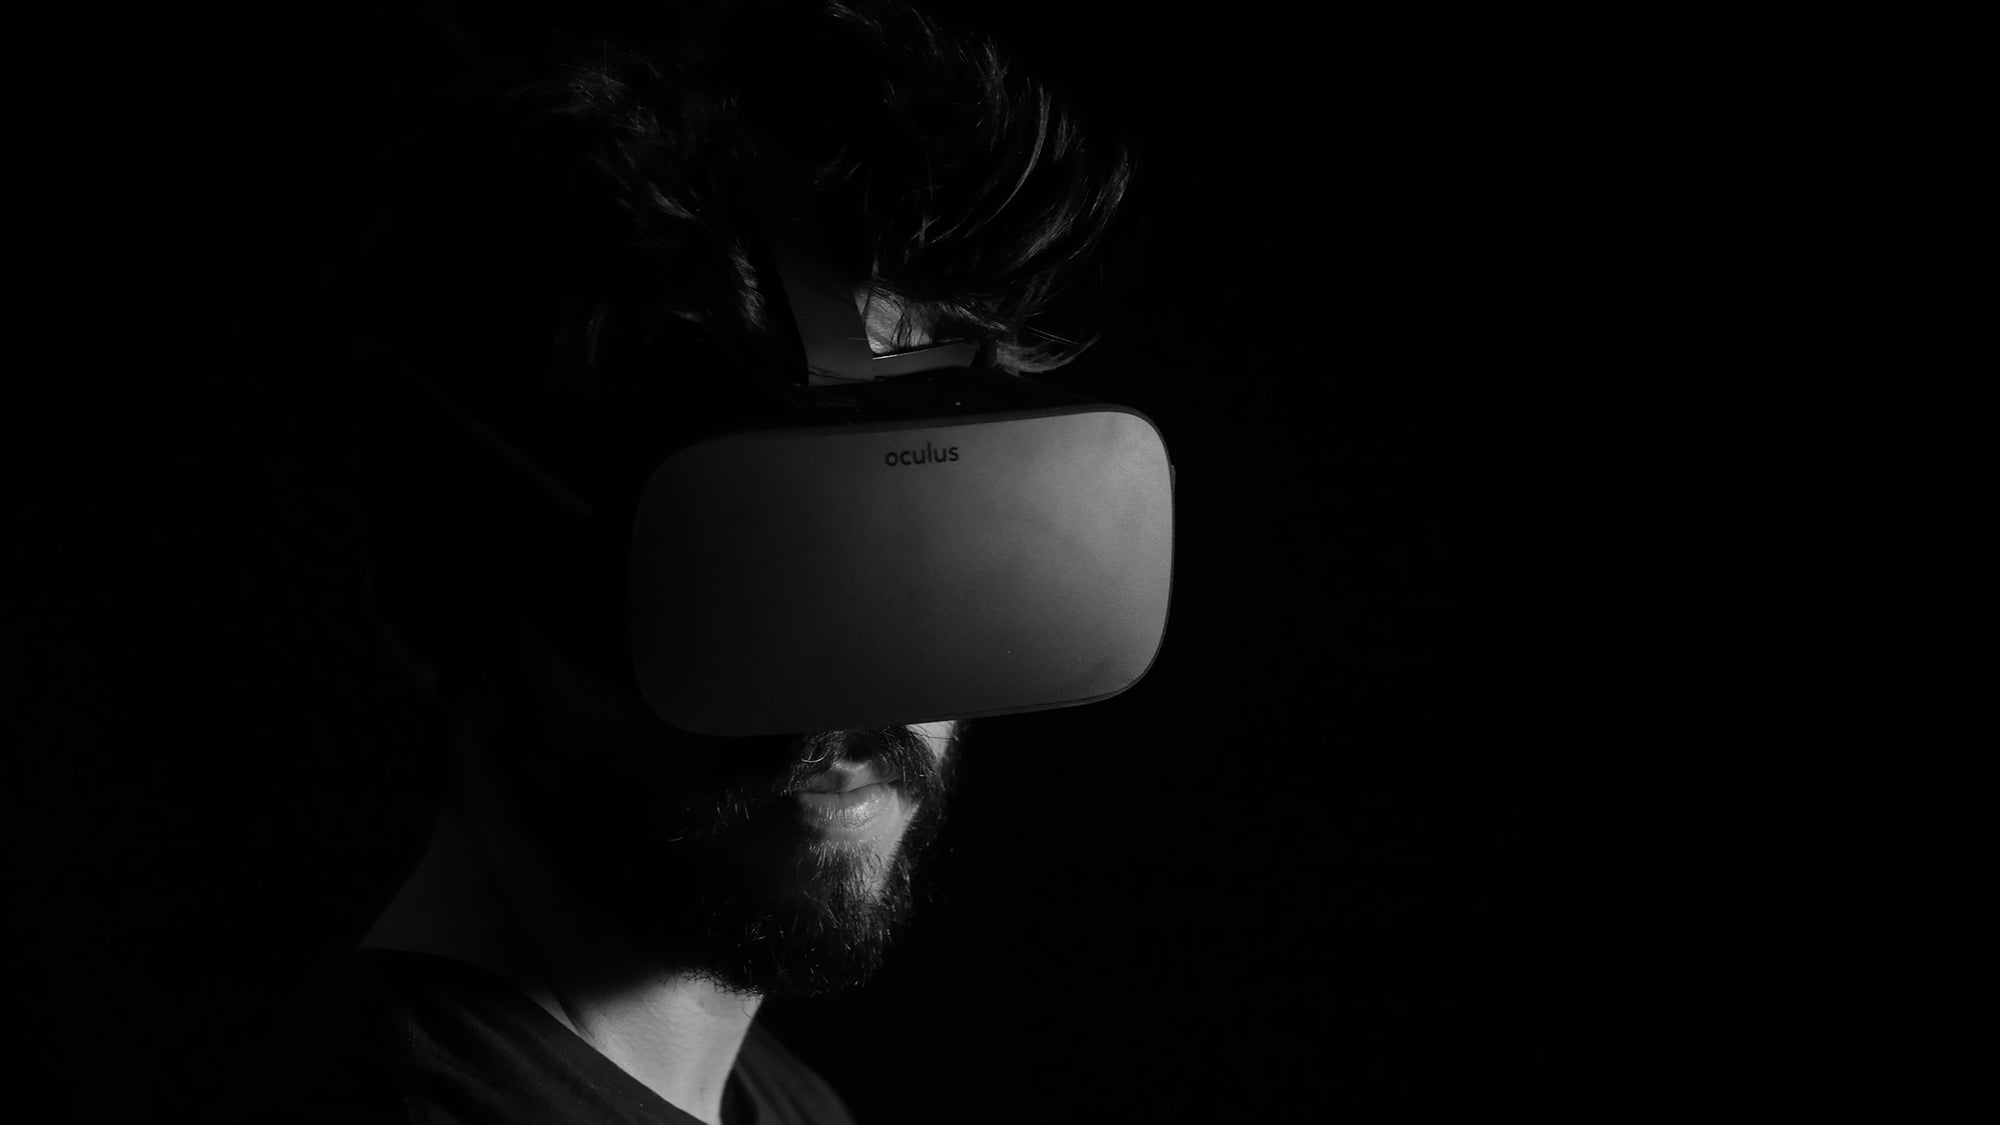 black and white photo of a man with oculus vr headset on